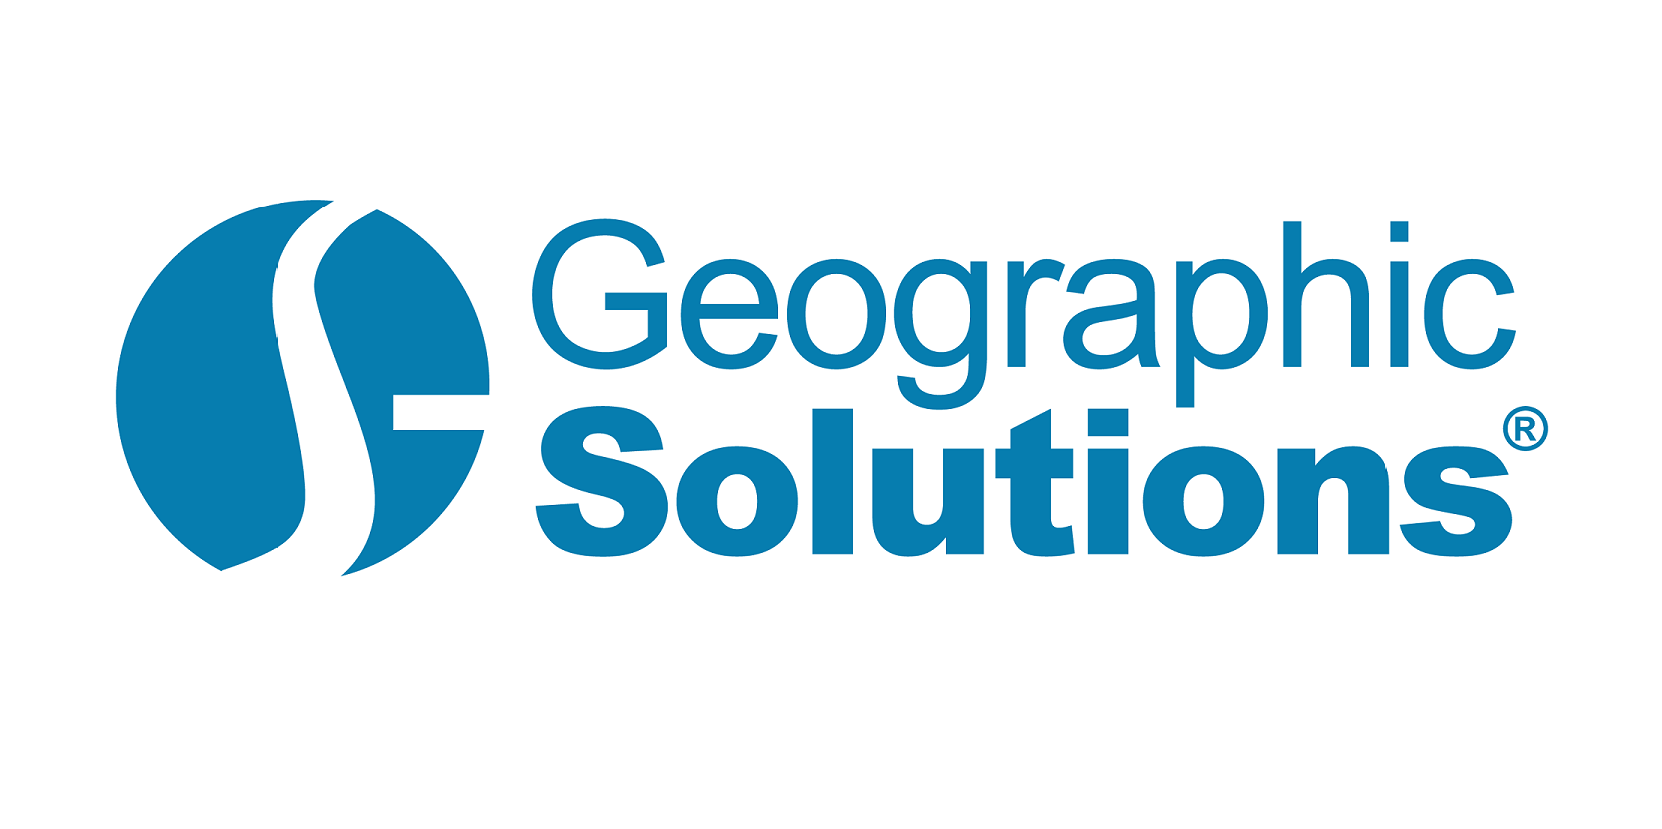 GeographicSolutionsExWeb 1 - National Conference sponsors and exhibitors